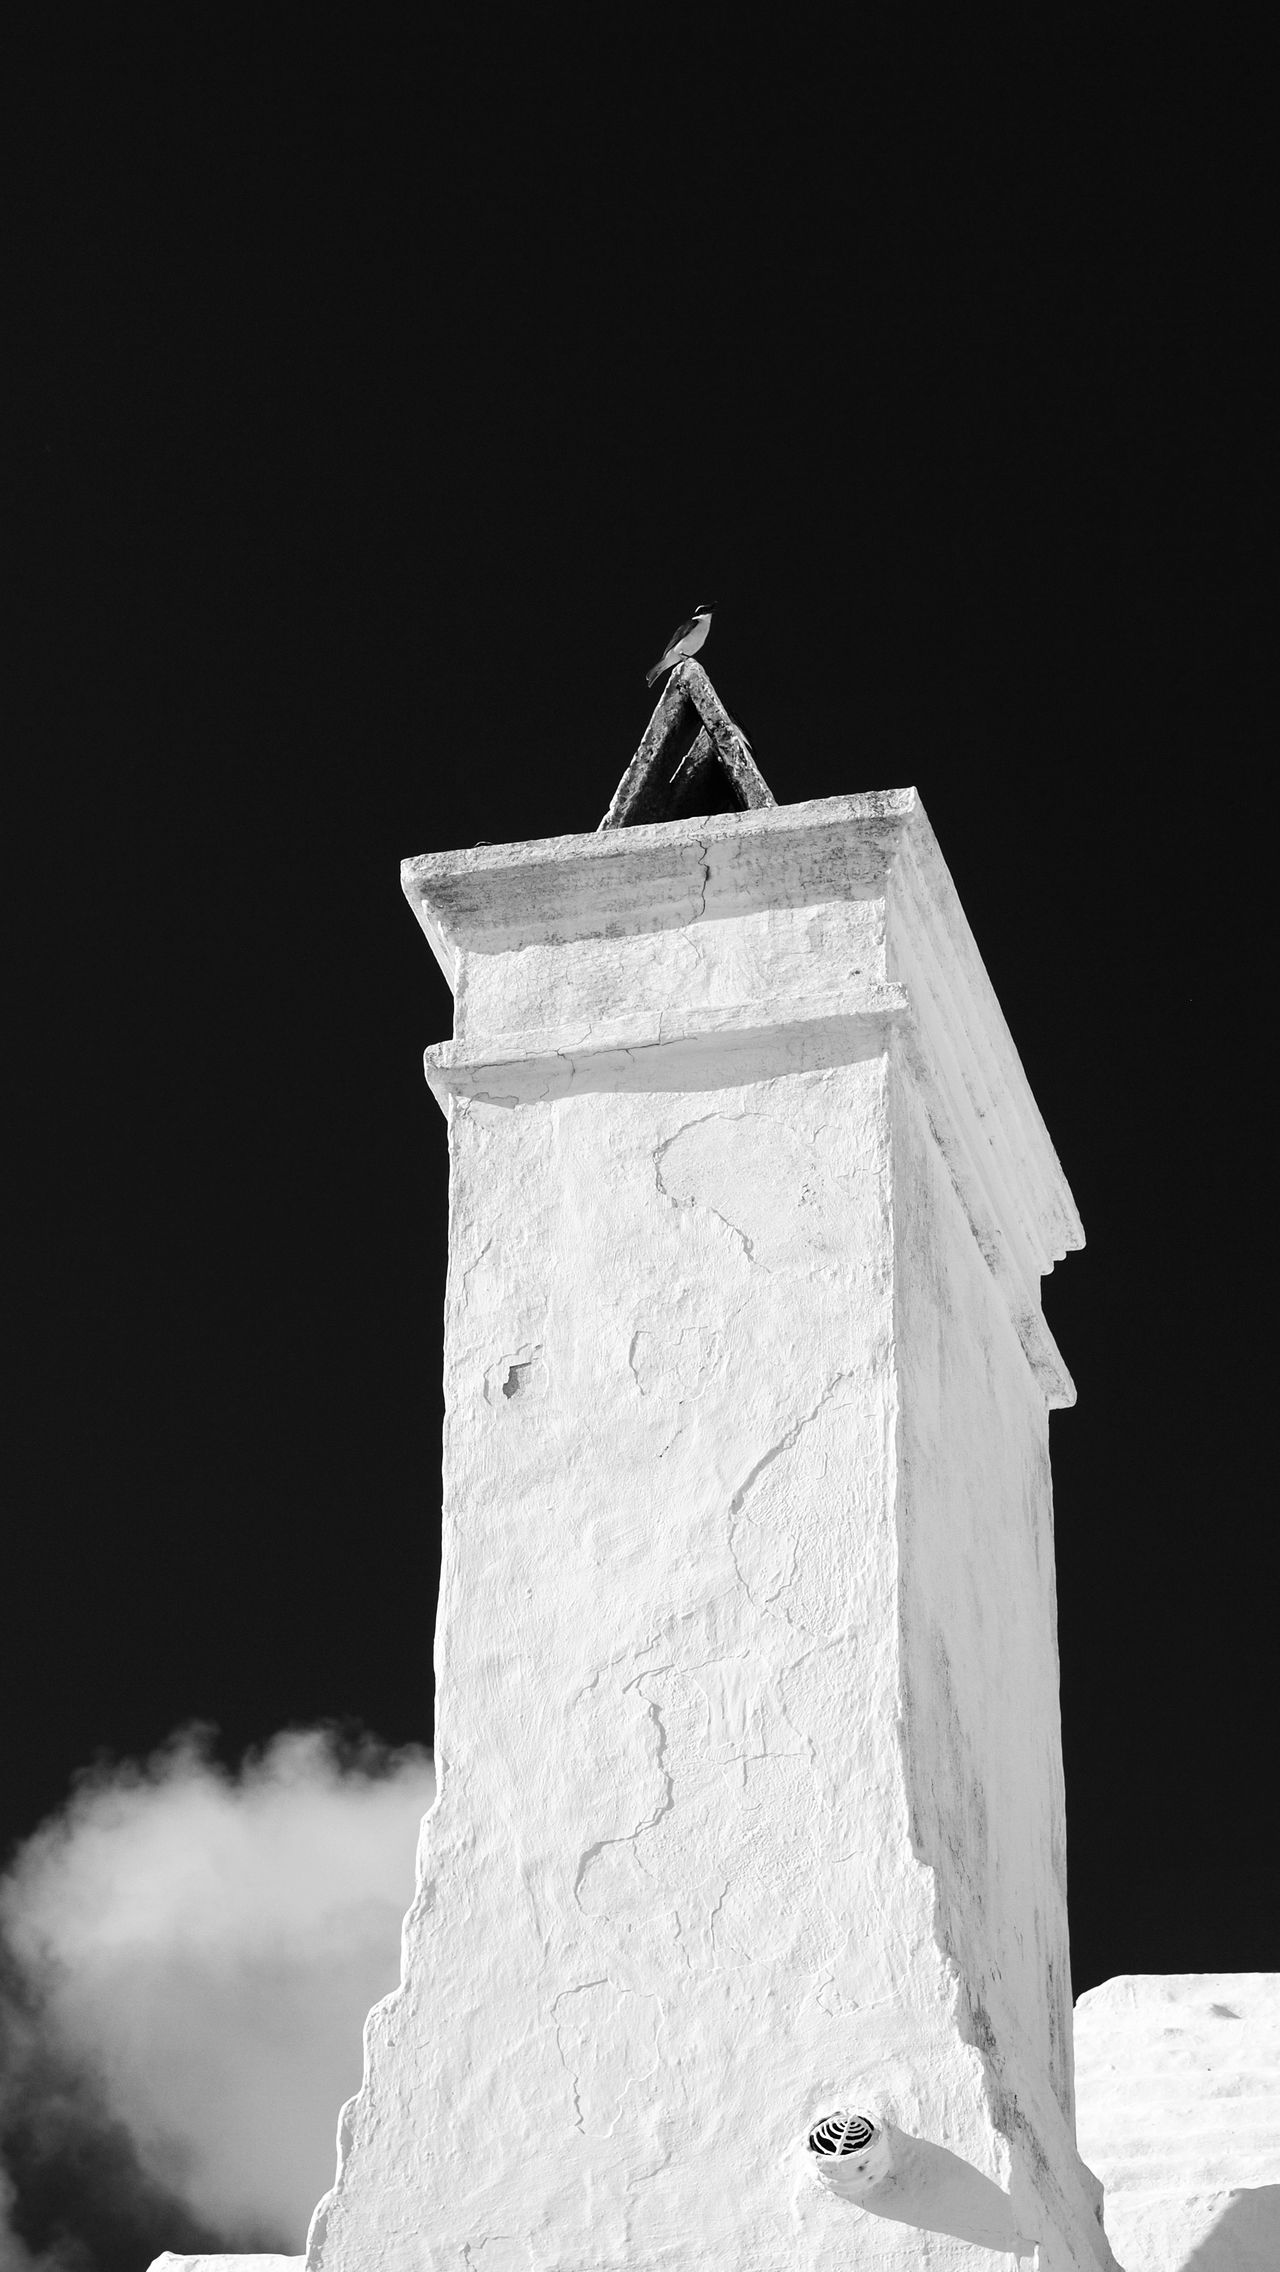 Animal Themes Architecture Background Backgrounds Bermuda Bird Birds Black & White Bradley Olson Bradleywarren Photography Built Structure Chimney City Copy Space Day Looking Up Low Angle View No People Outdoors Perching Room For Text Sky Tower White White Color